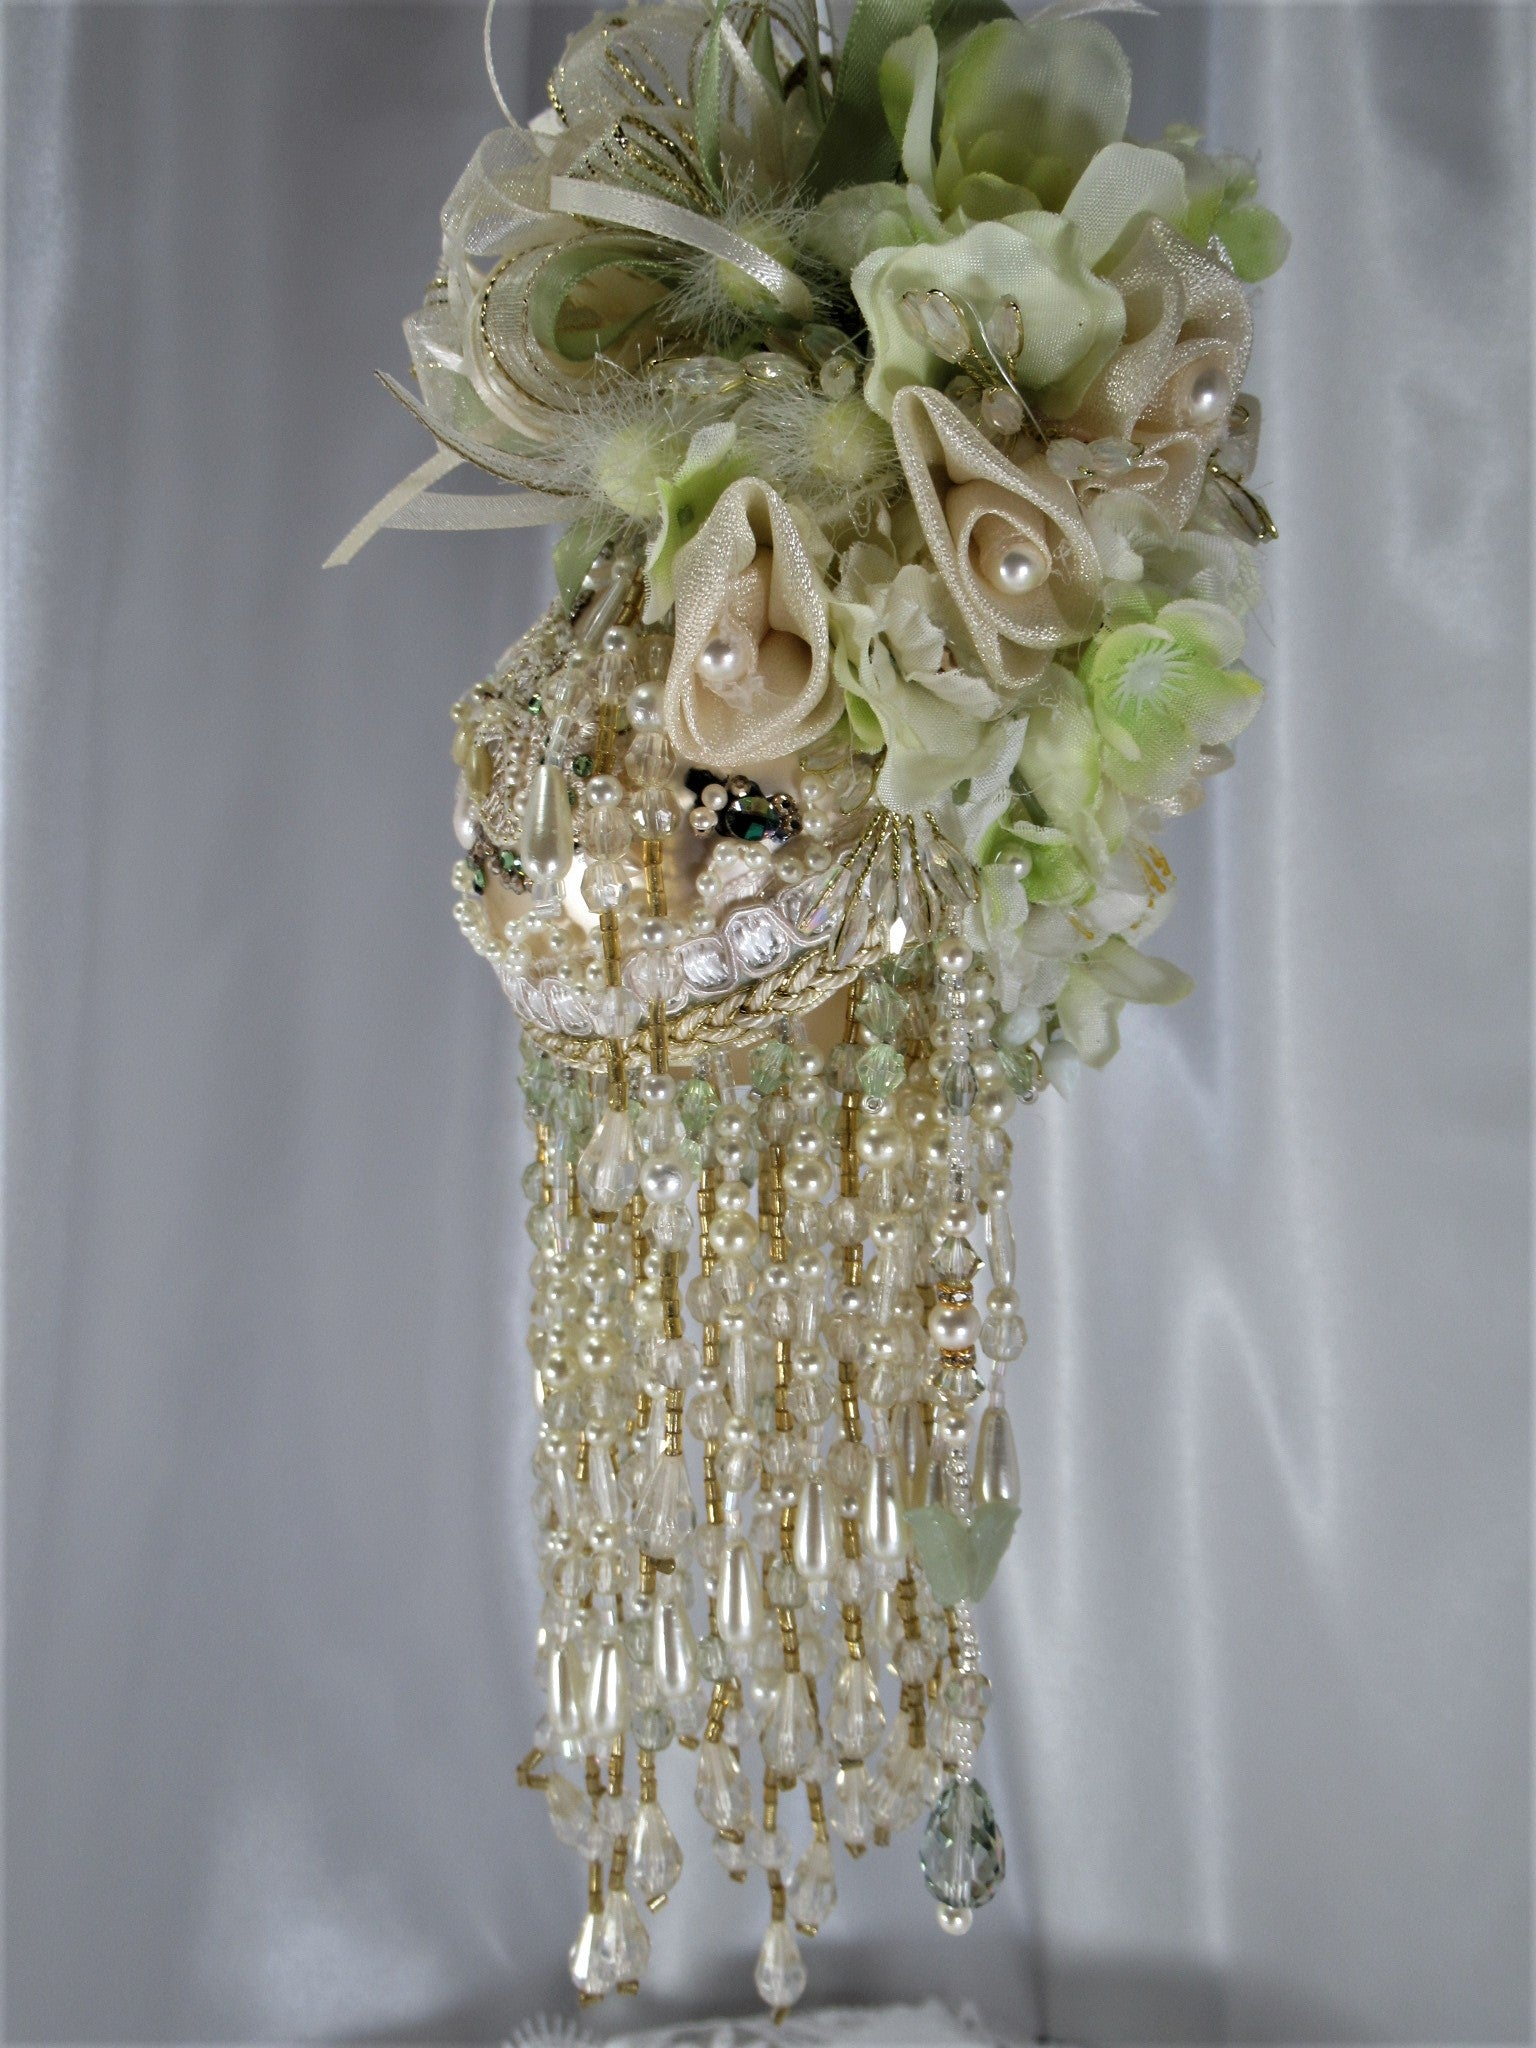 Ivory and Mint Green Medium 11 Inch Tall Beaded Victorian Ornament with 169 Swarvski Crystals and Pearls - Odyssey Creations